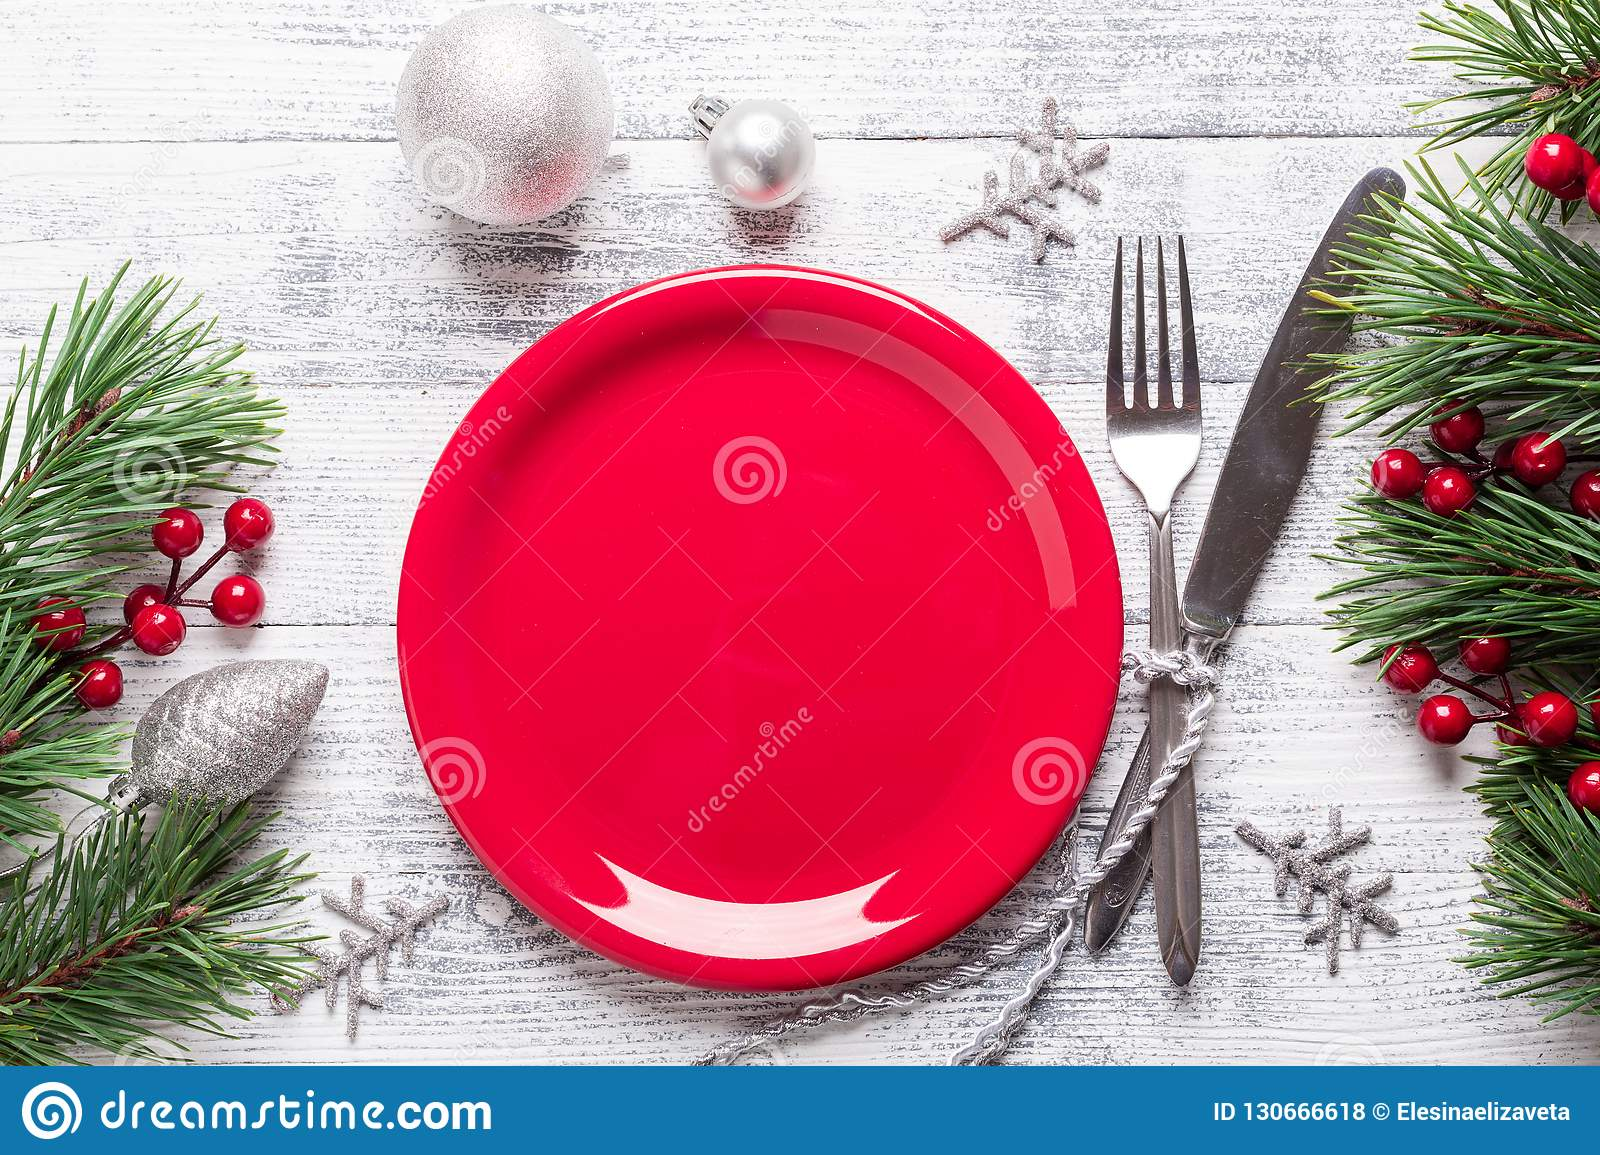 Christmas table setting with empty red plate, gift box and silverware on light wood background. Fir tree branch.